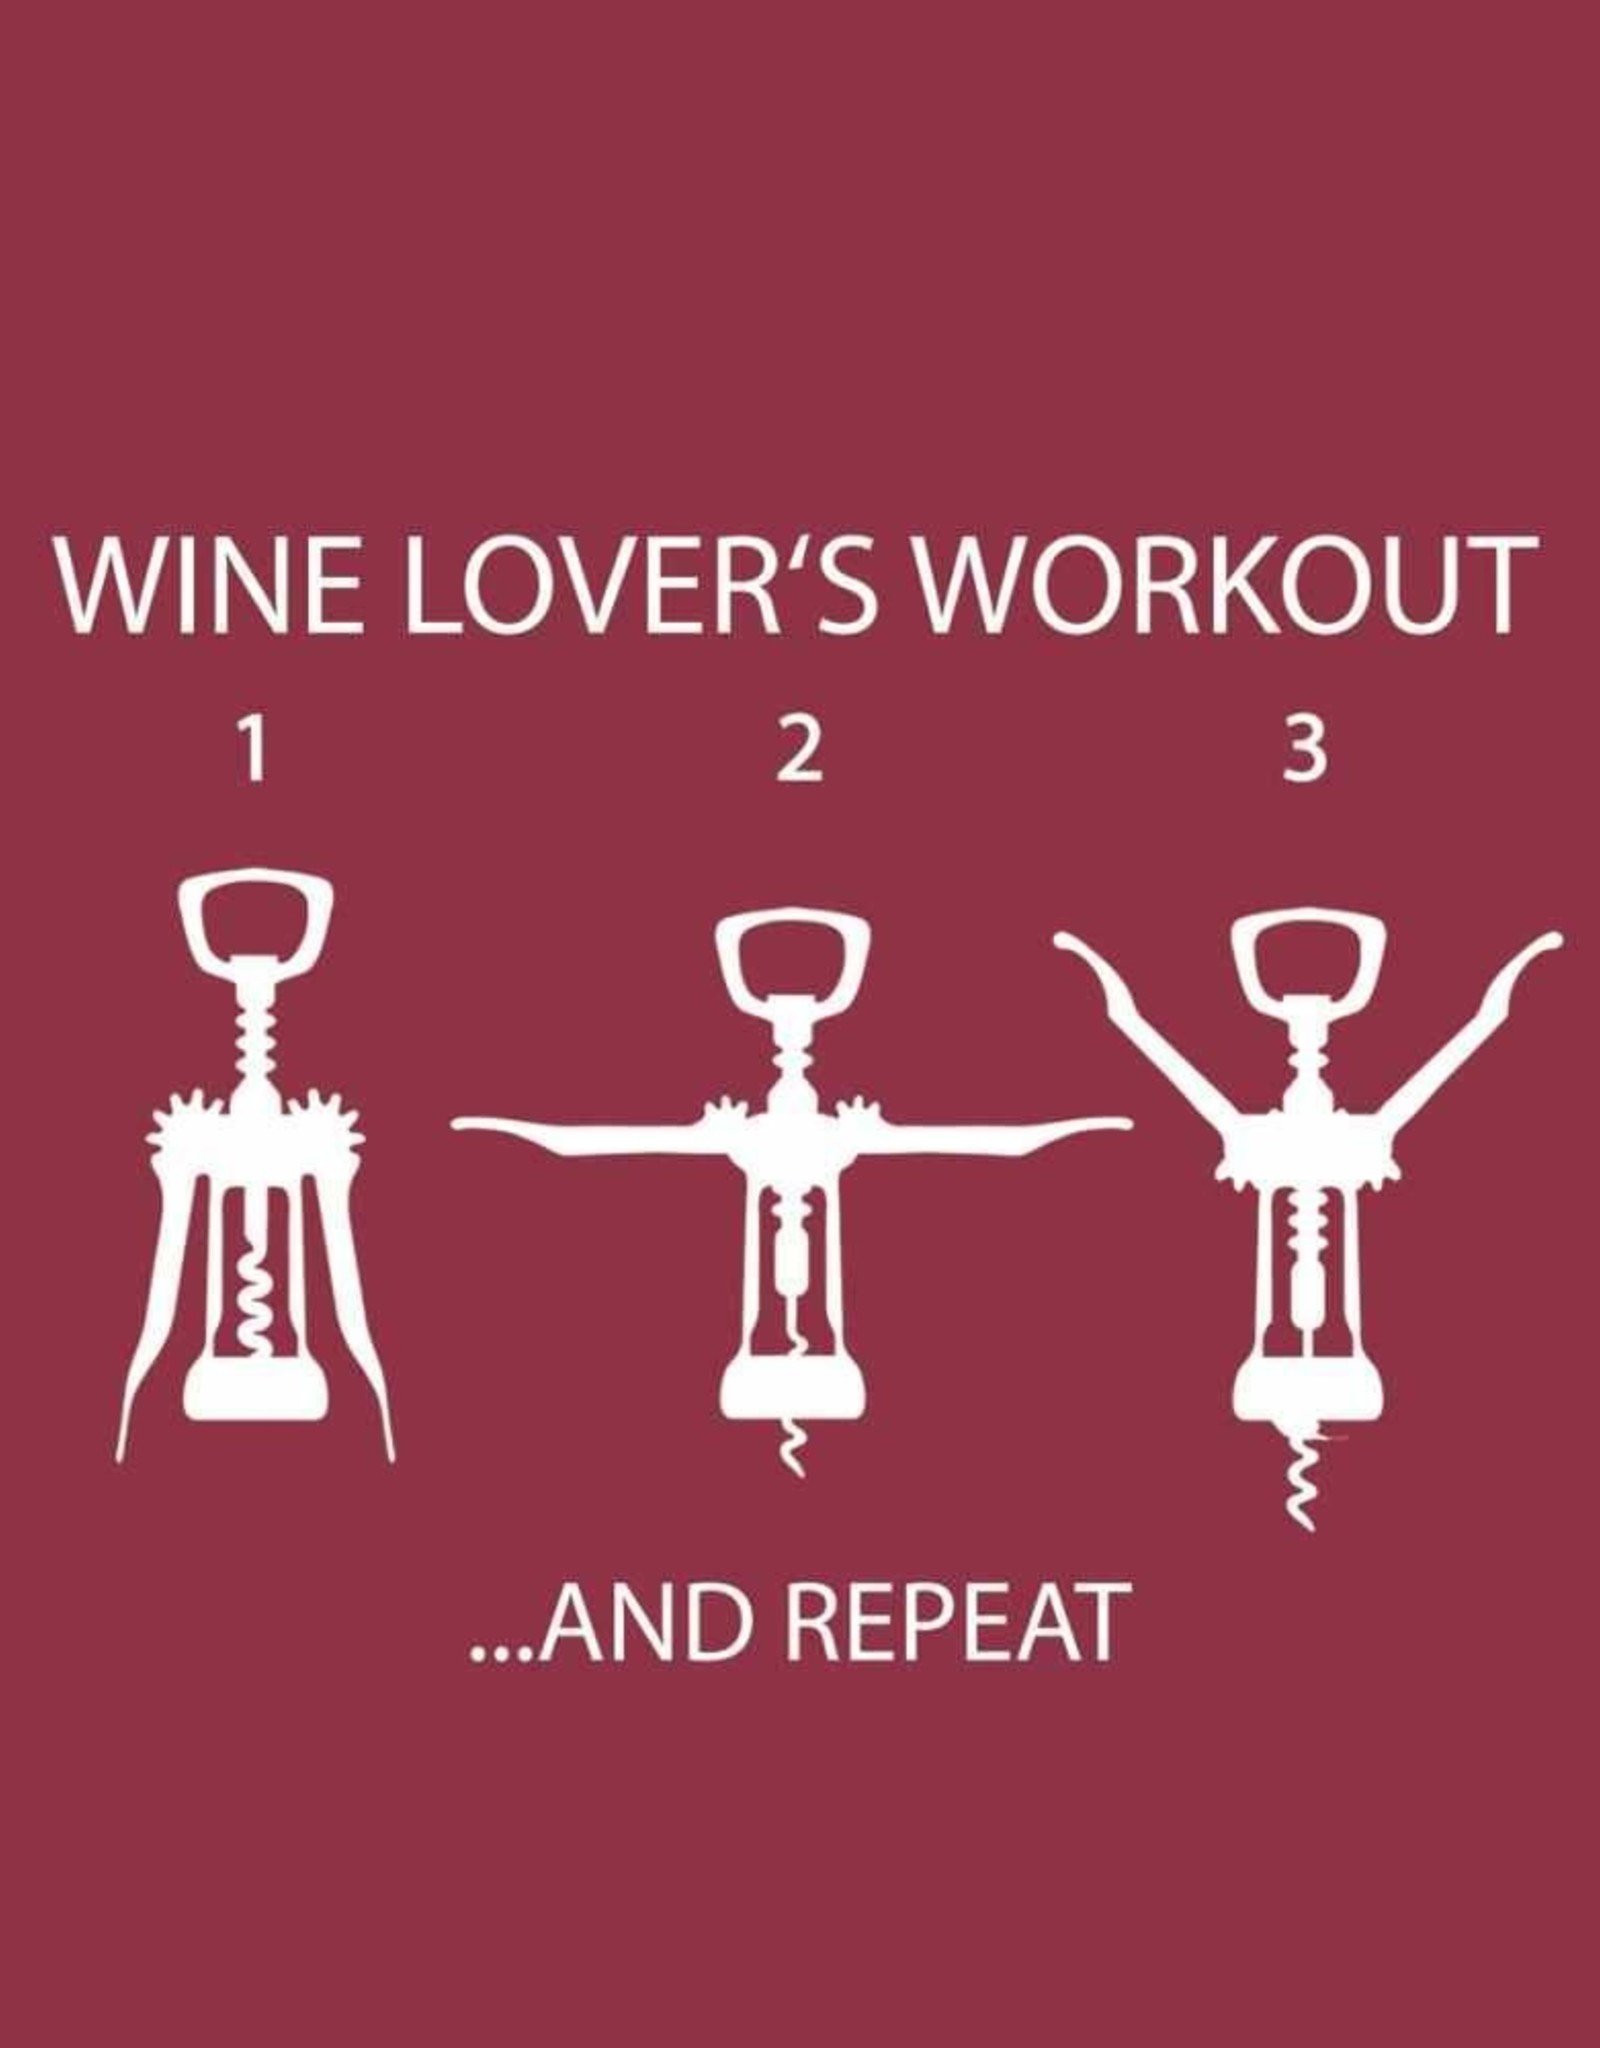 Paperproducts Design PPD - Cocktail Napkins Wine Lover's Workout